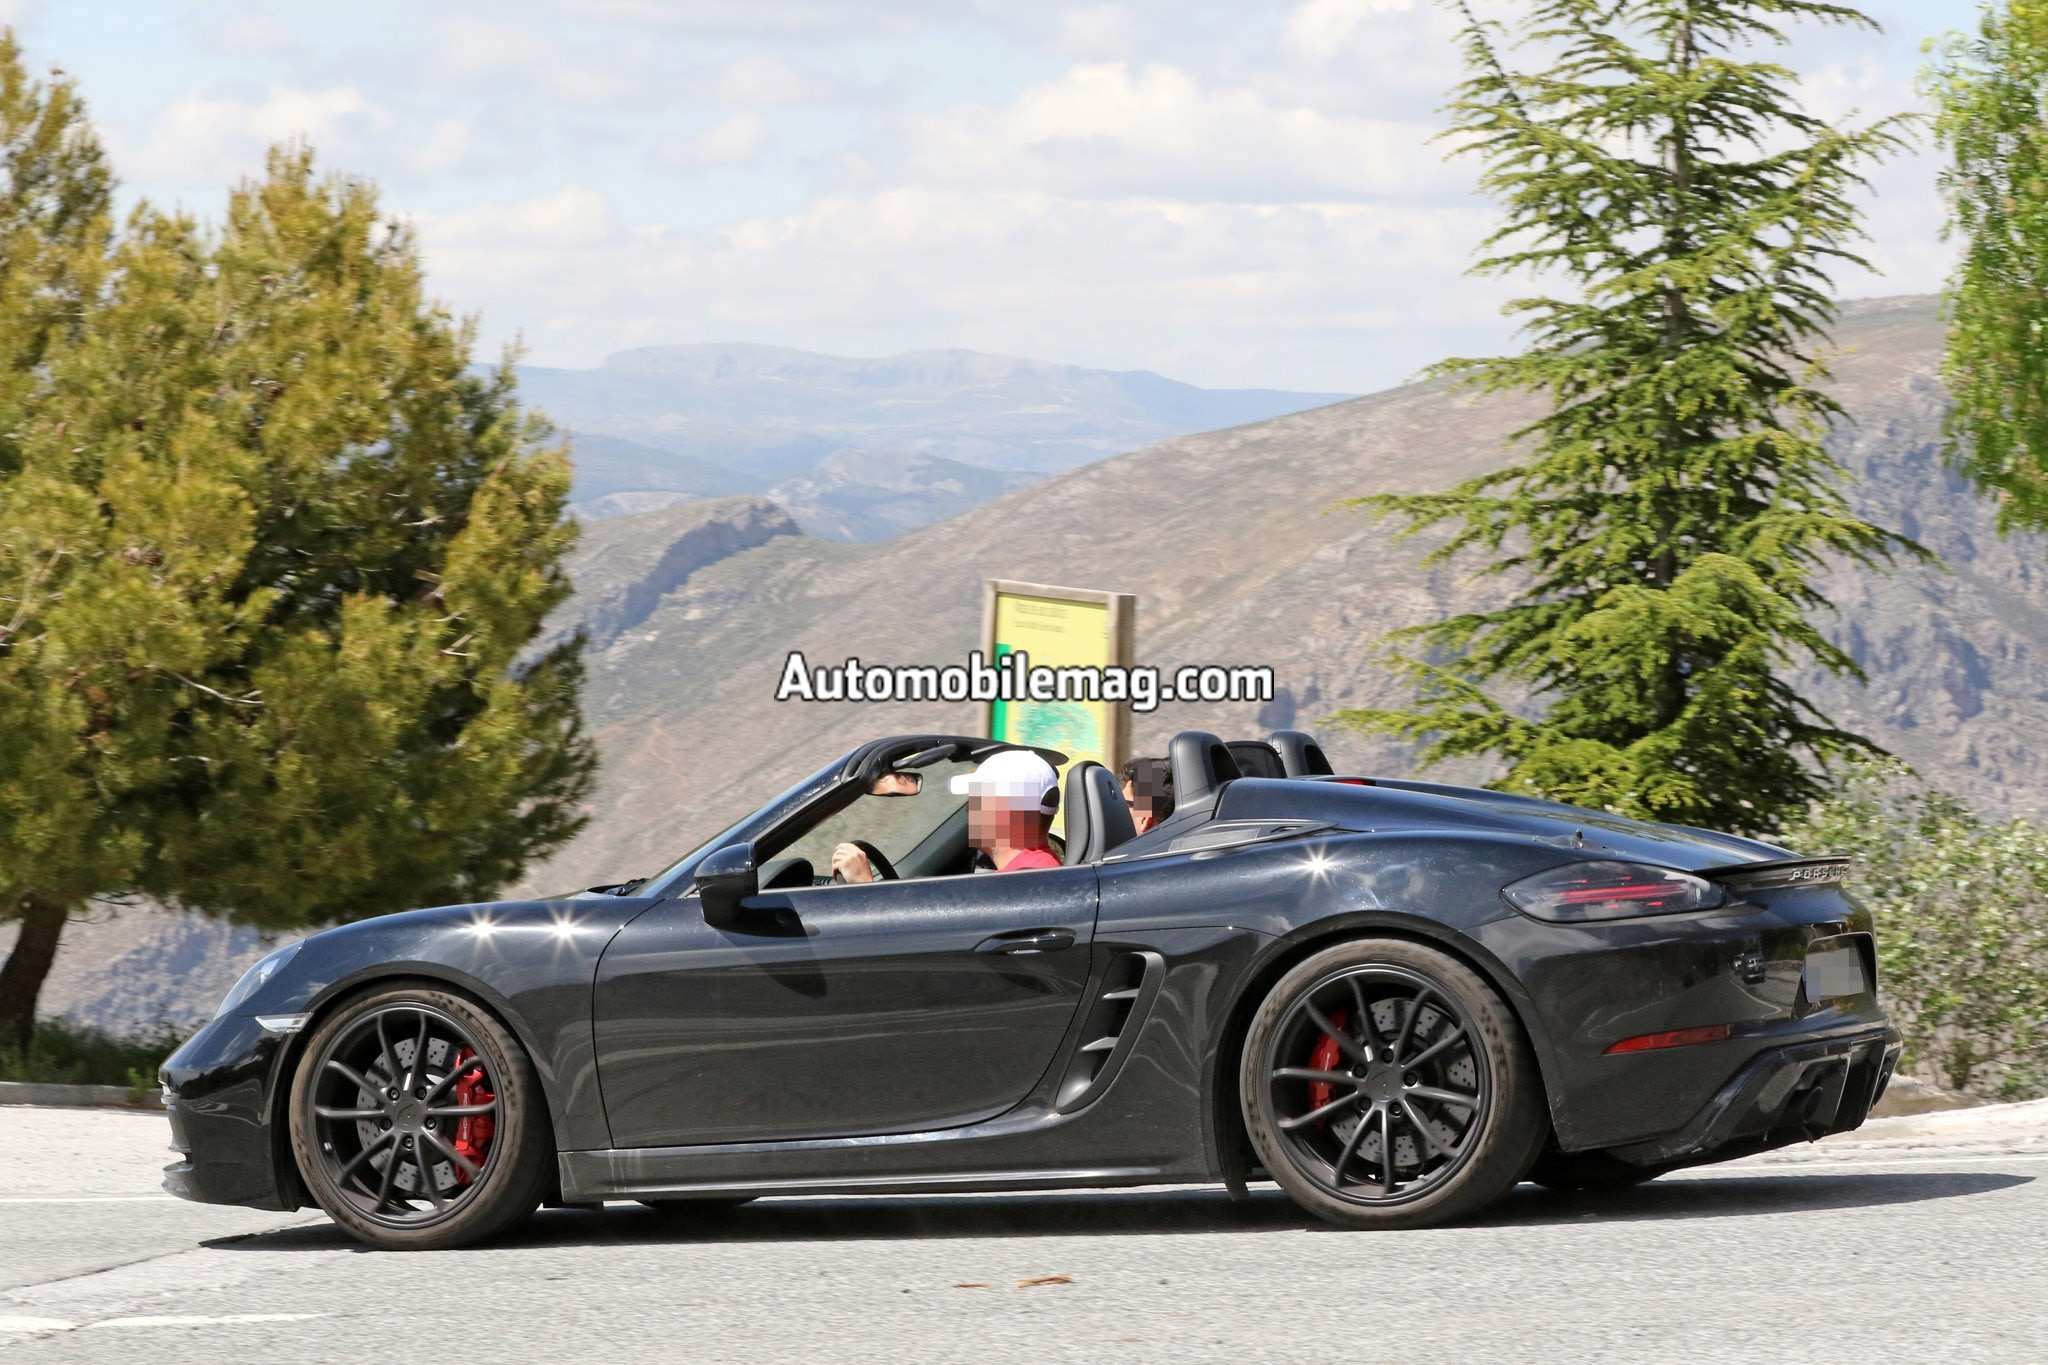 52 New 2019 Porsche Boxster Spyder Wallpaper with 2019 Porsche Boxster Spyder